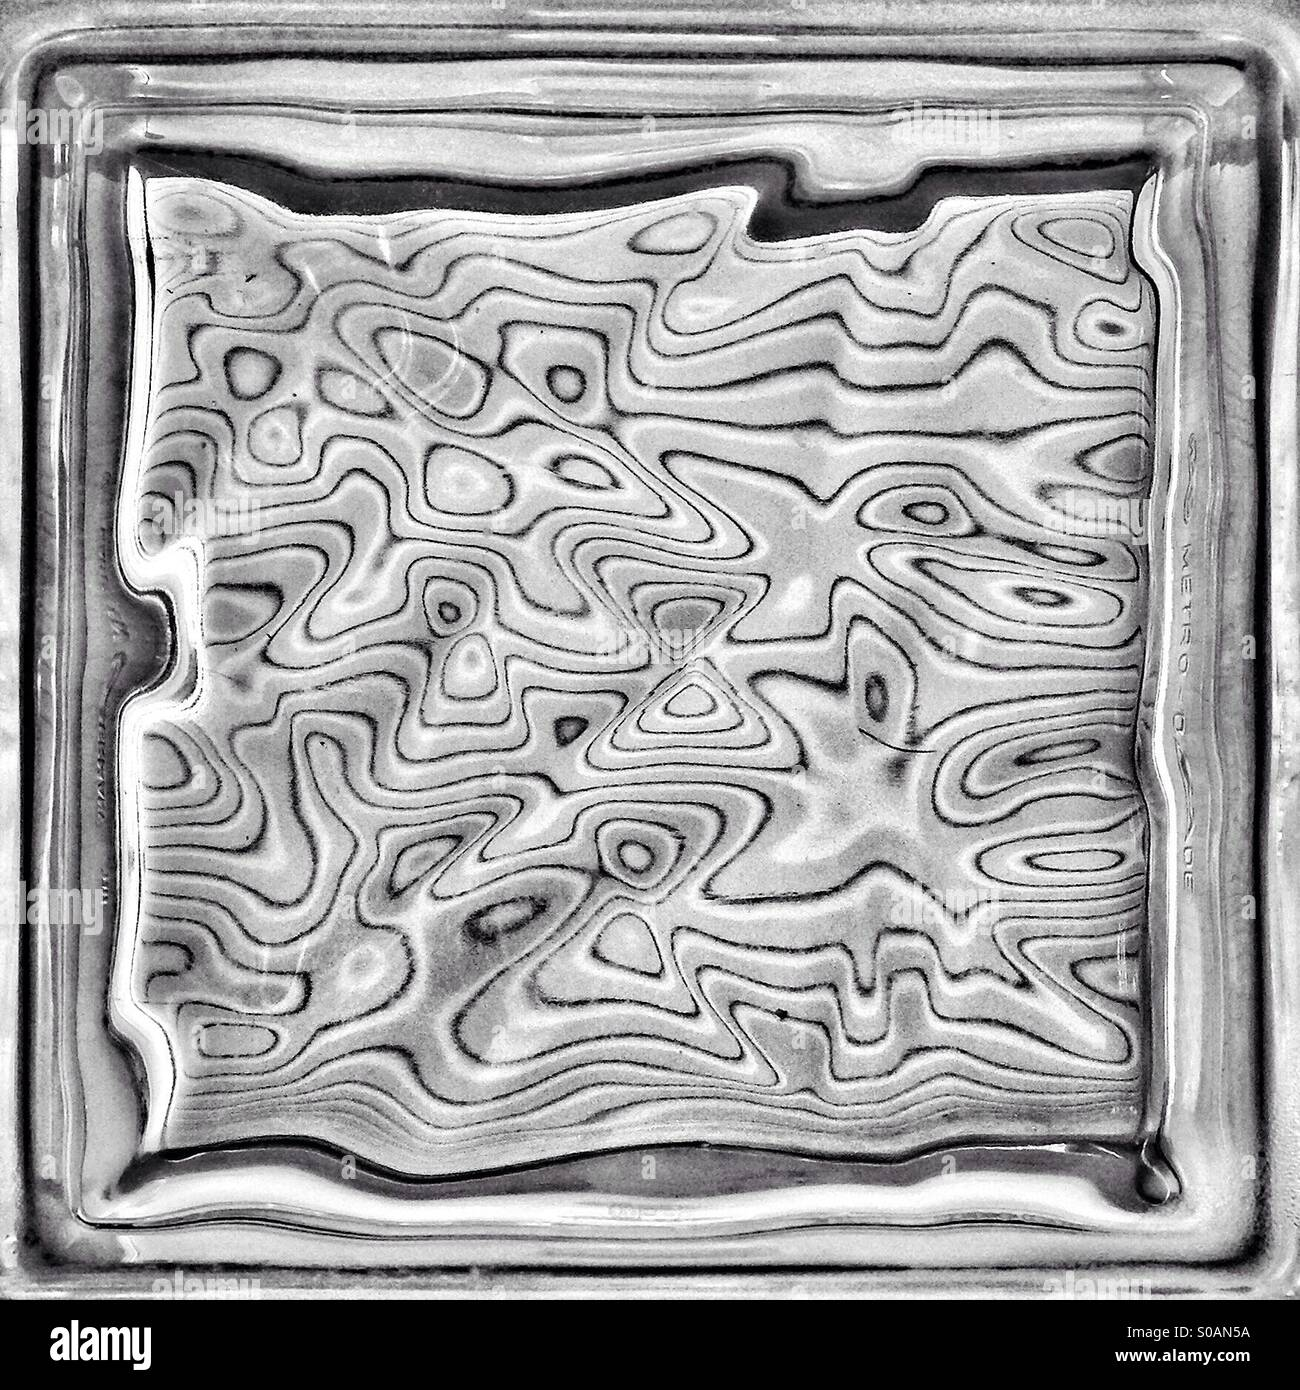 Abstract of light pattern through a warped-glass block. Stock Photo